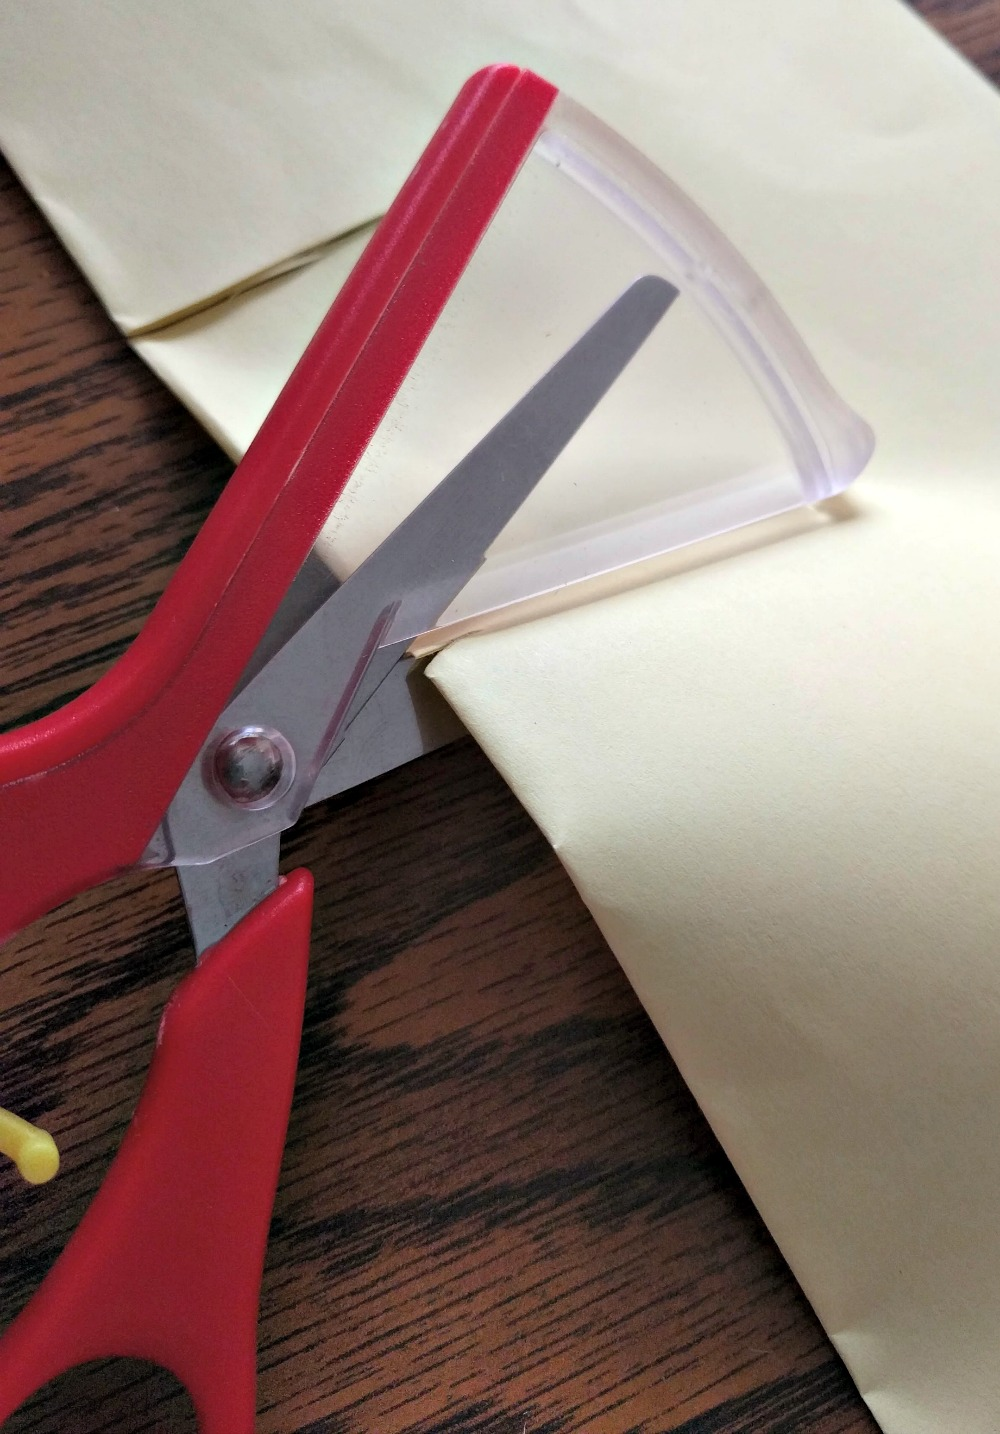 The Ultra Safe Safety Scissors from The Pencil Grip, Inc.